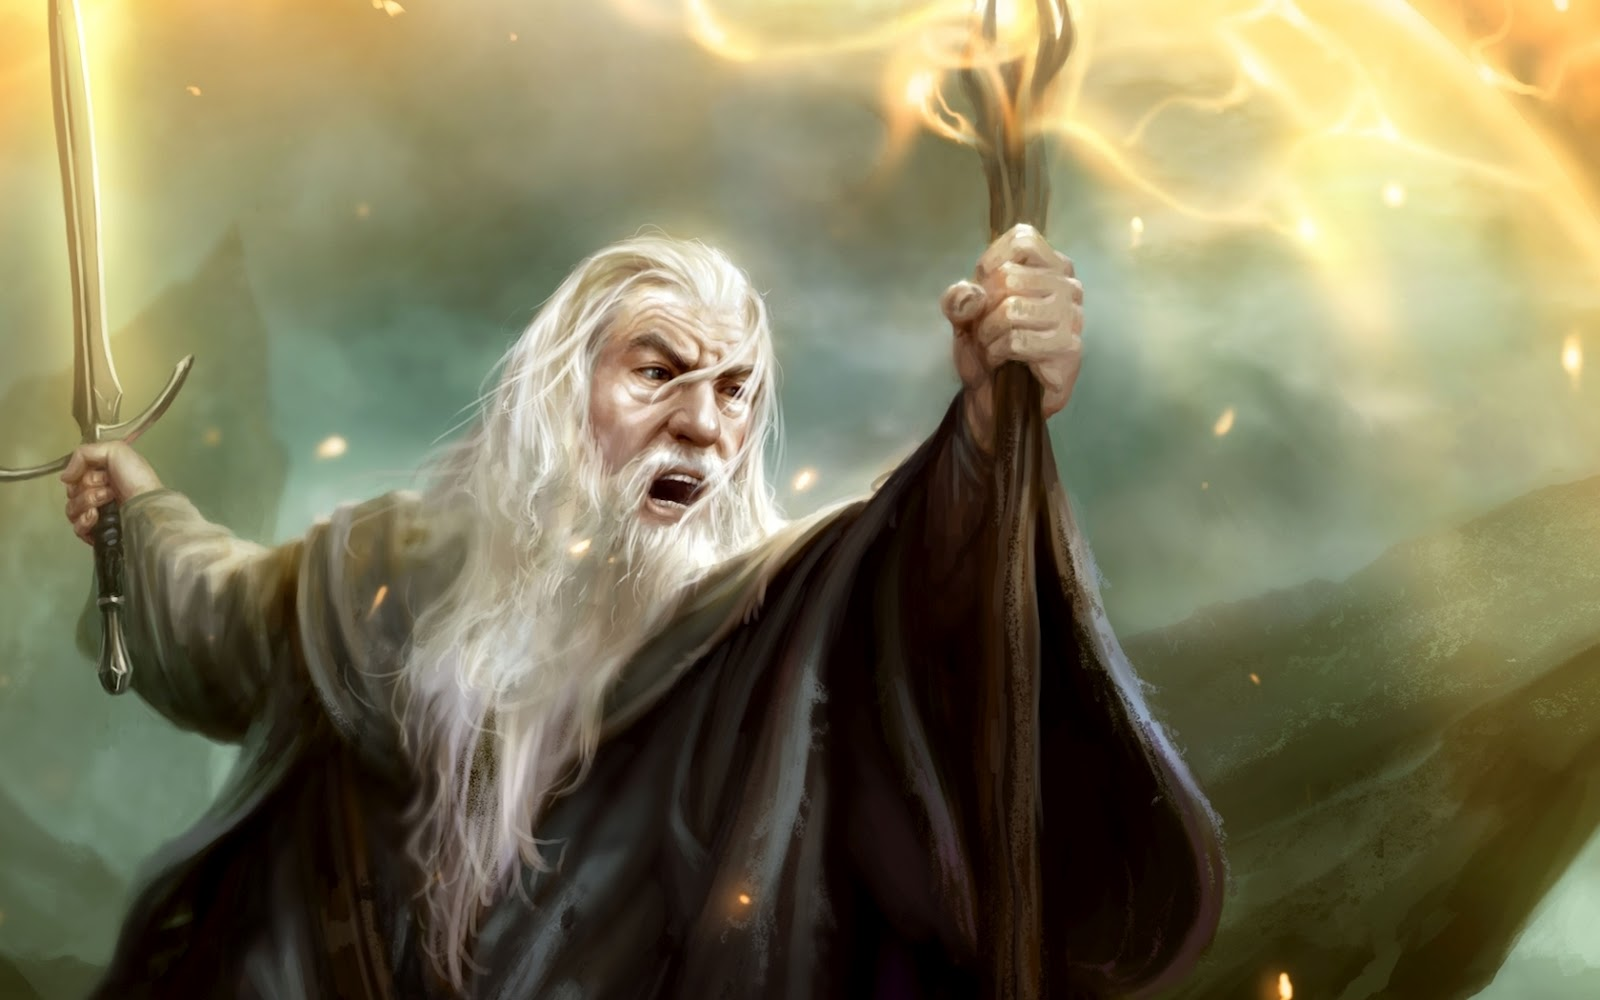 http://4.bp.blogspot.com/-7wGNxOe1fto/UBgMHSF4hNI/AAAAAAAADPA/6NbwzKucewk/s1600/Gandalf_Guardiands_of_Middle_Earth_HD_Game_Wallpaper-GameWallBase.Com-.jpg